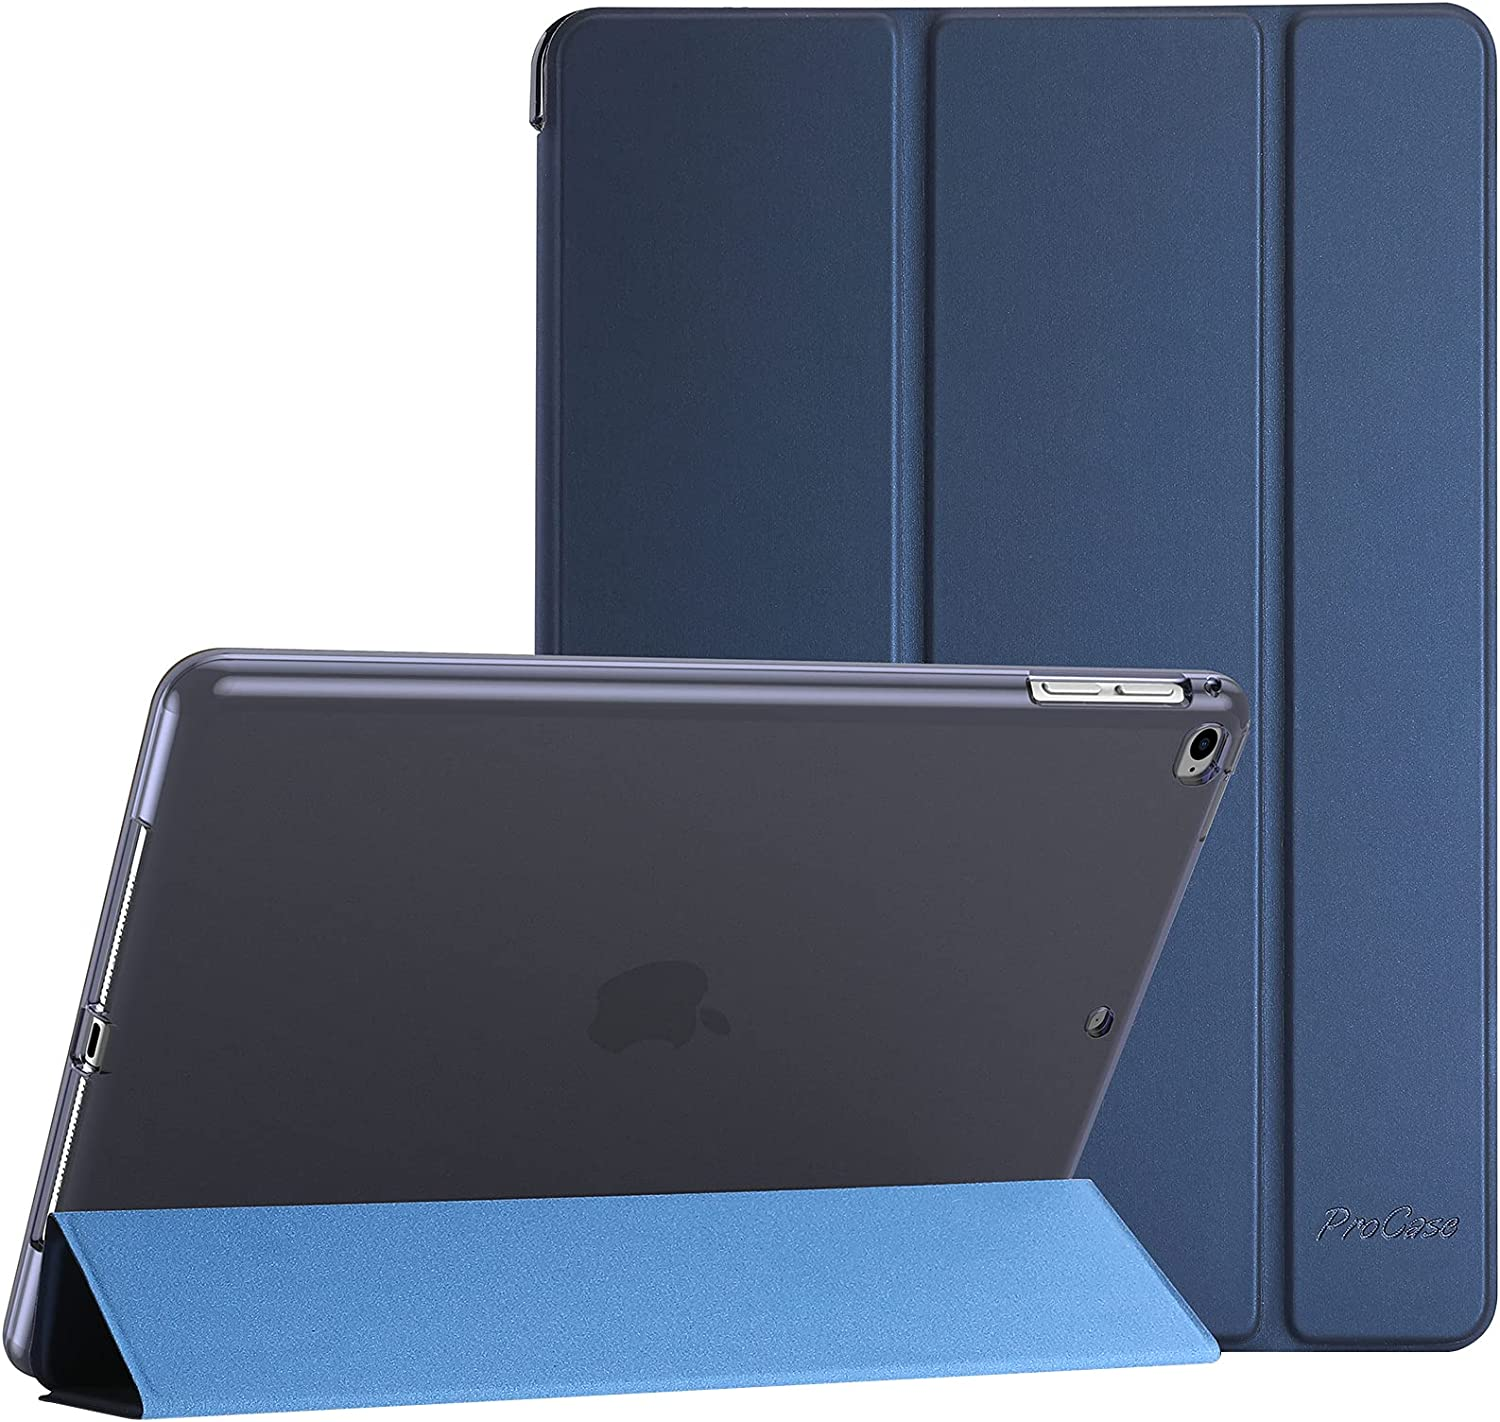 ProCase iPad 9.7 Case (2018/2017 Model, 6th/5th Generation), iPad Air 2, iPad Air Case, Slim Soft TPU Translucent Back Cover Trifold Stand Folio Smart Case for iPad 9.7 Inch, iPad Air 2/ Air 1 -Navy